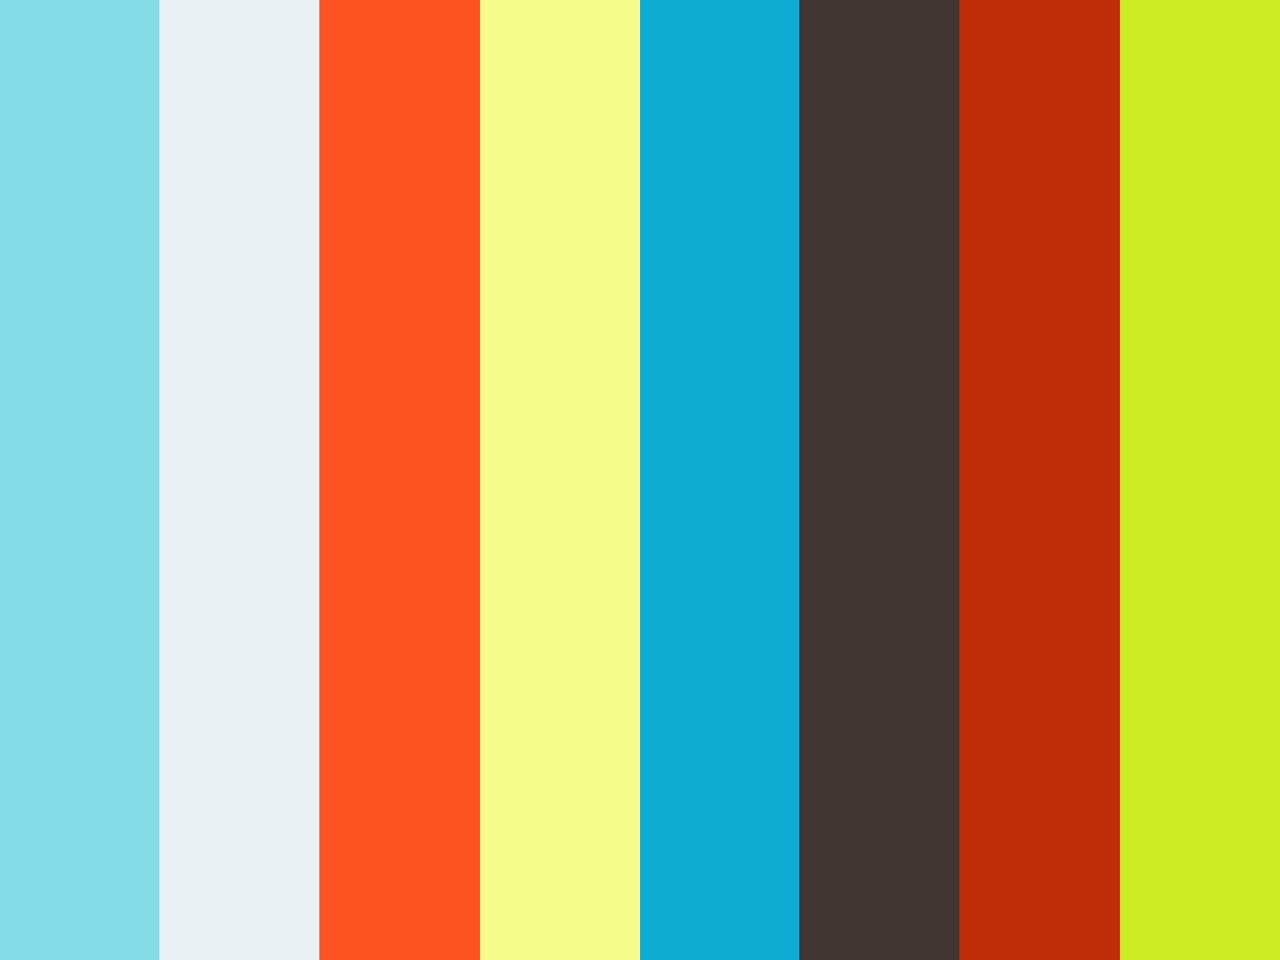 Soulwax - Transient Program For Drums And Machinery (Tour Teaser)